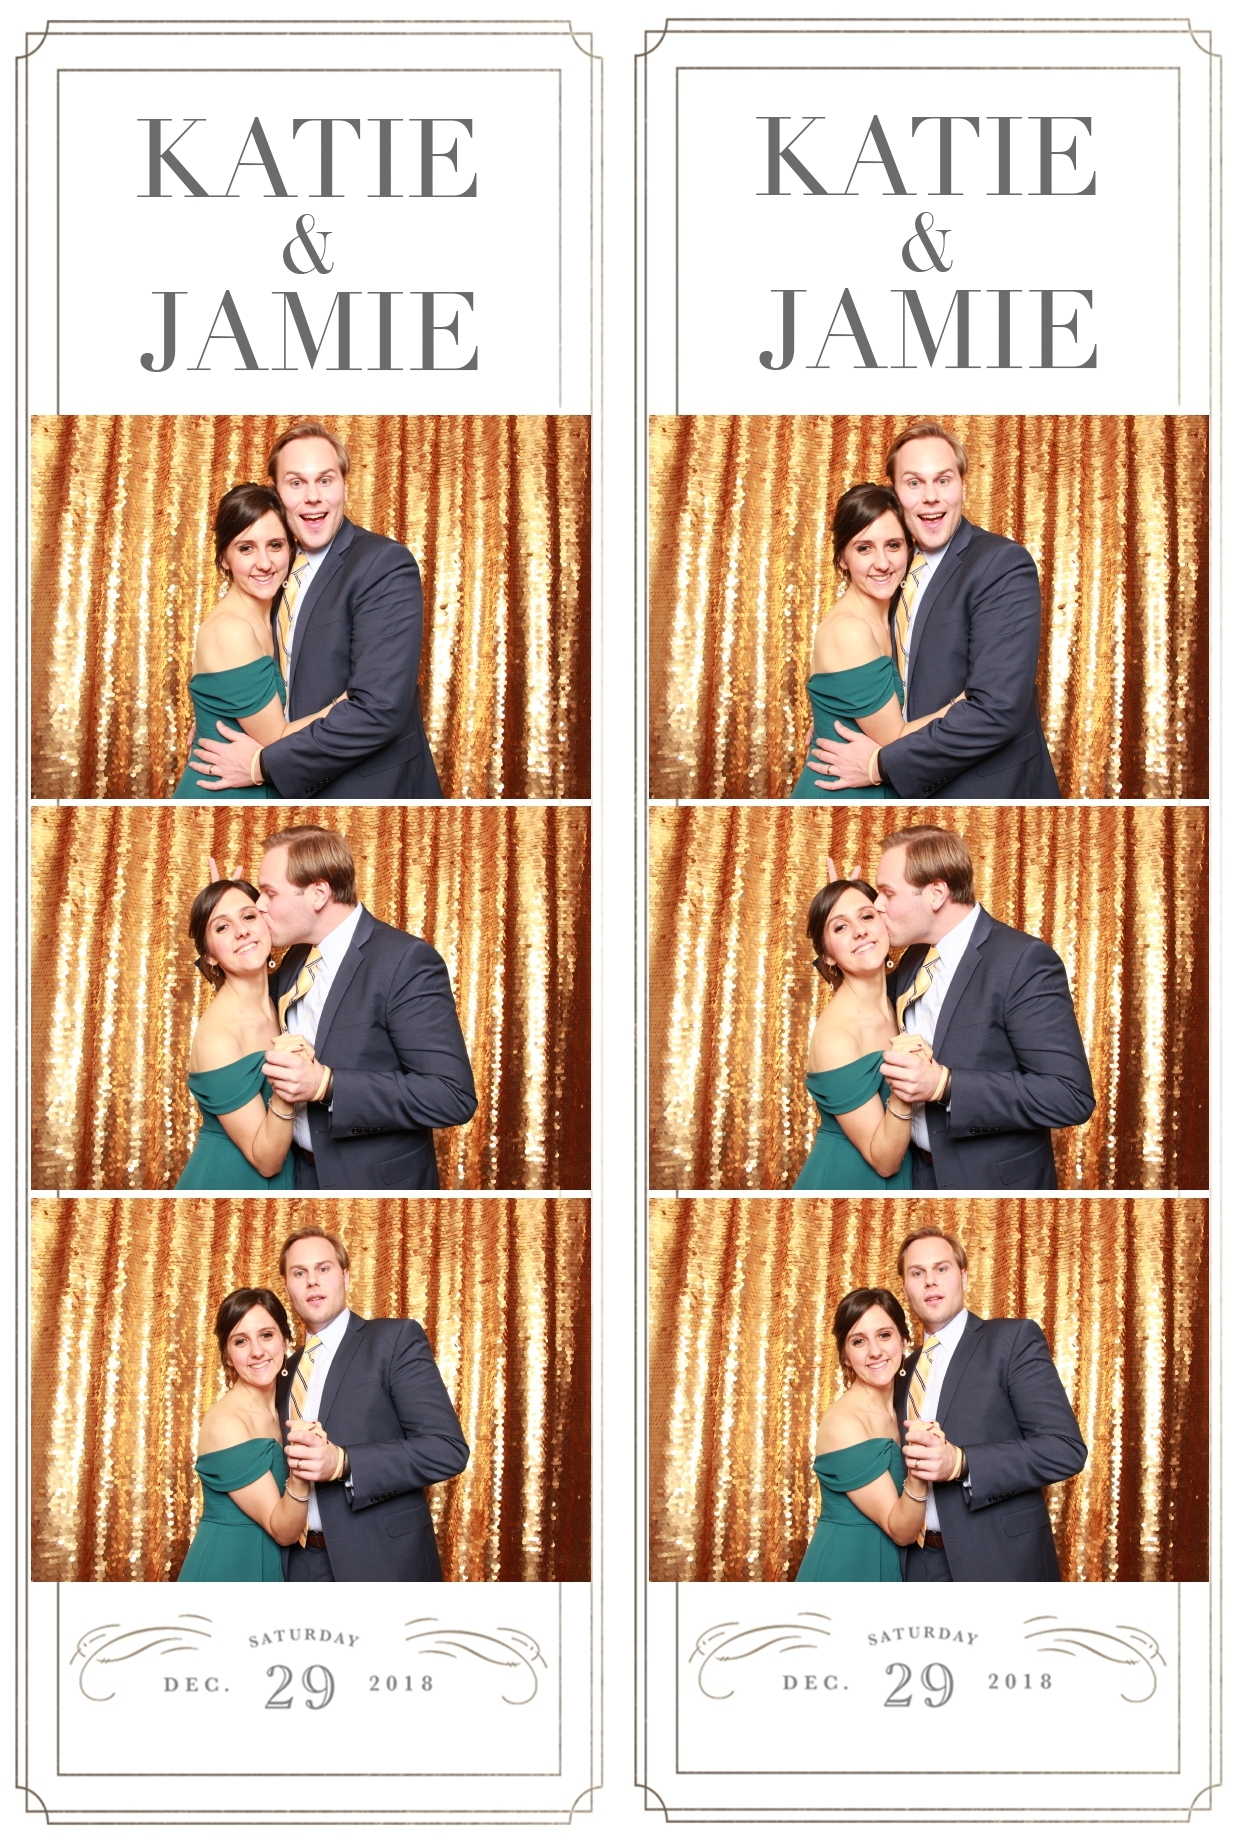 Oh Happy Day Booth - Katie and Jamie Customized29.jpg